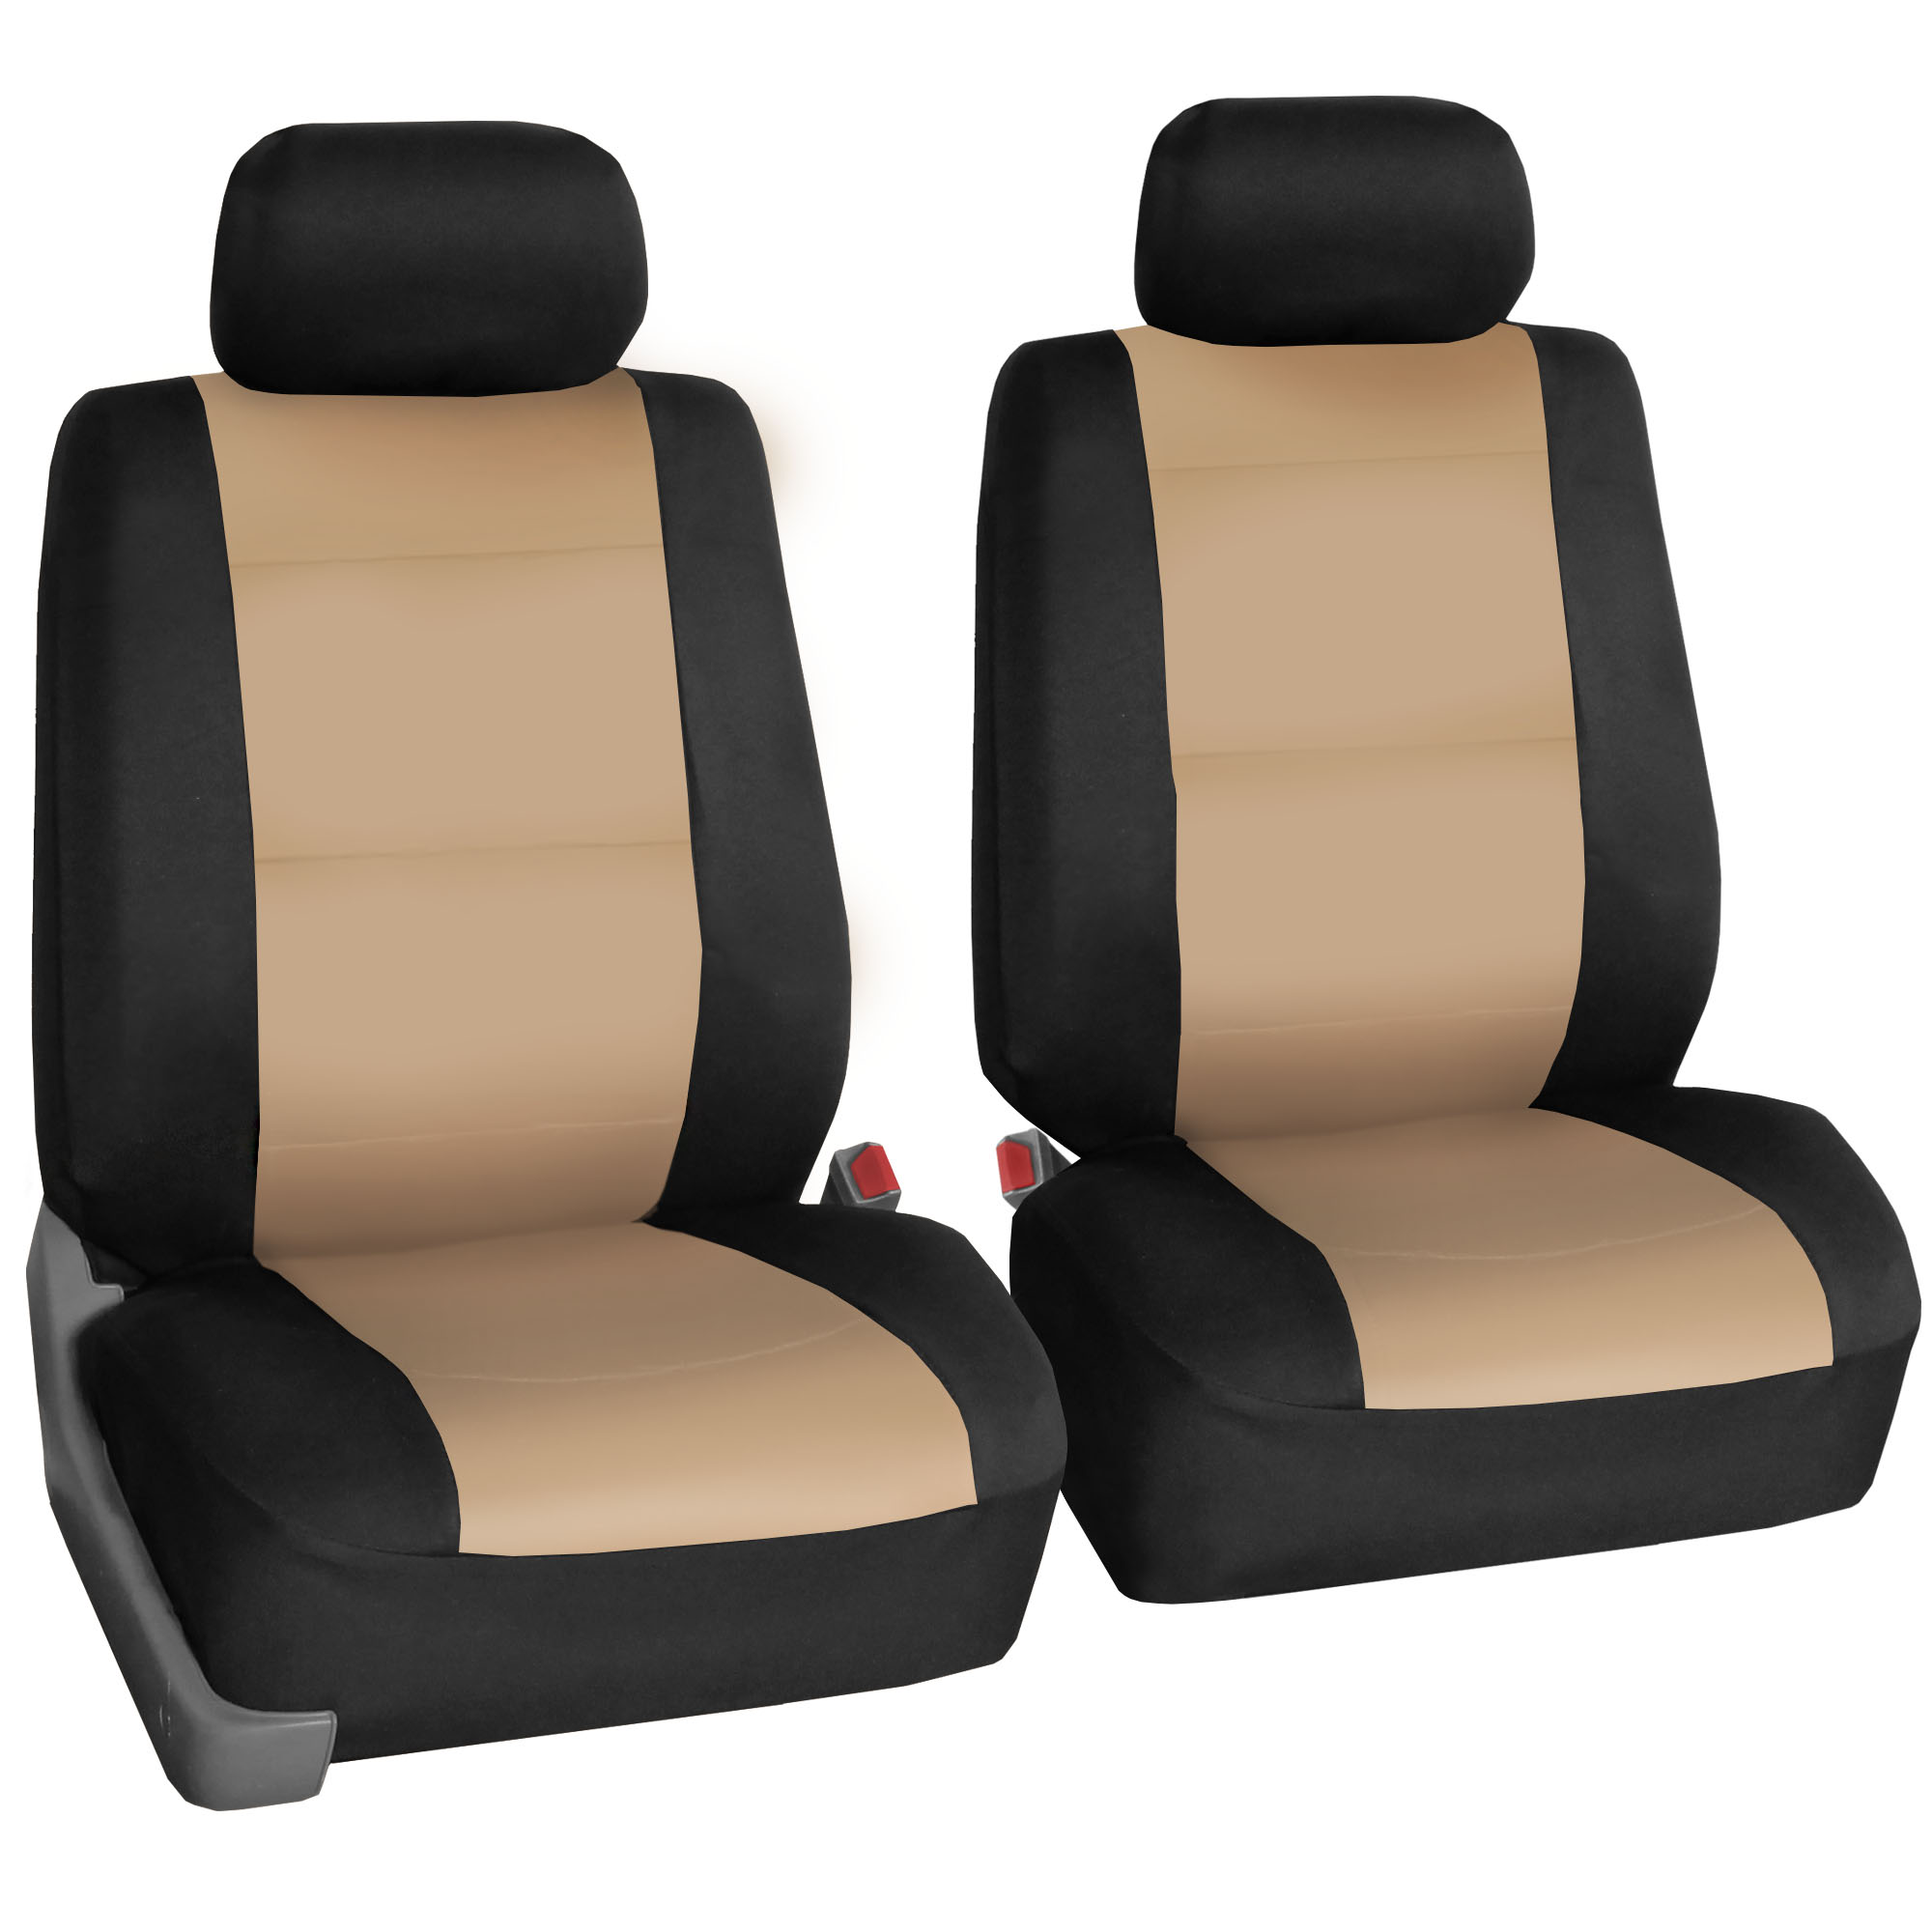 Universal Neoprene Seat Covers For Car SUV 5 Colors Combo